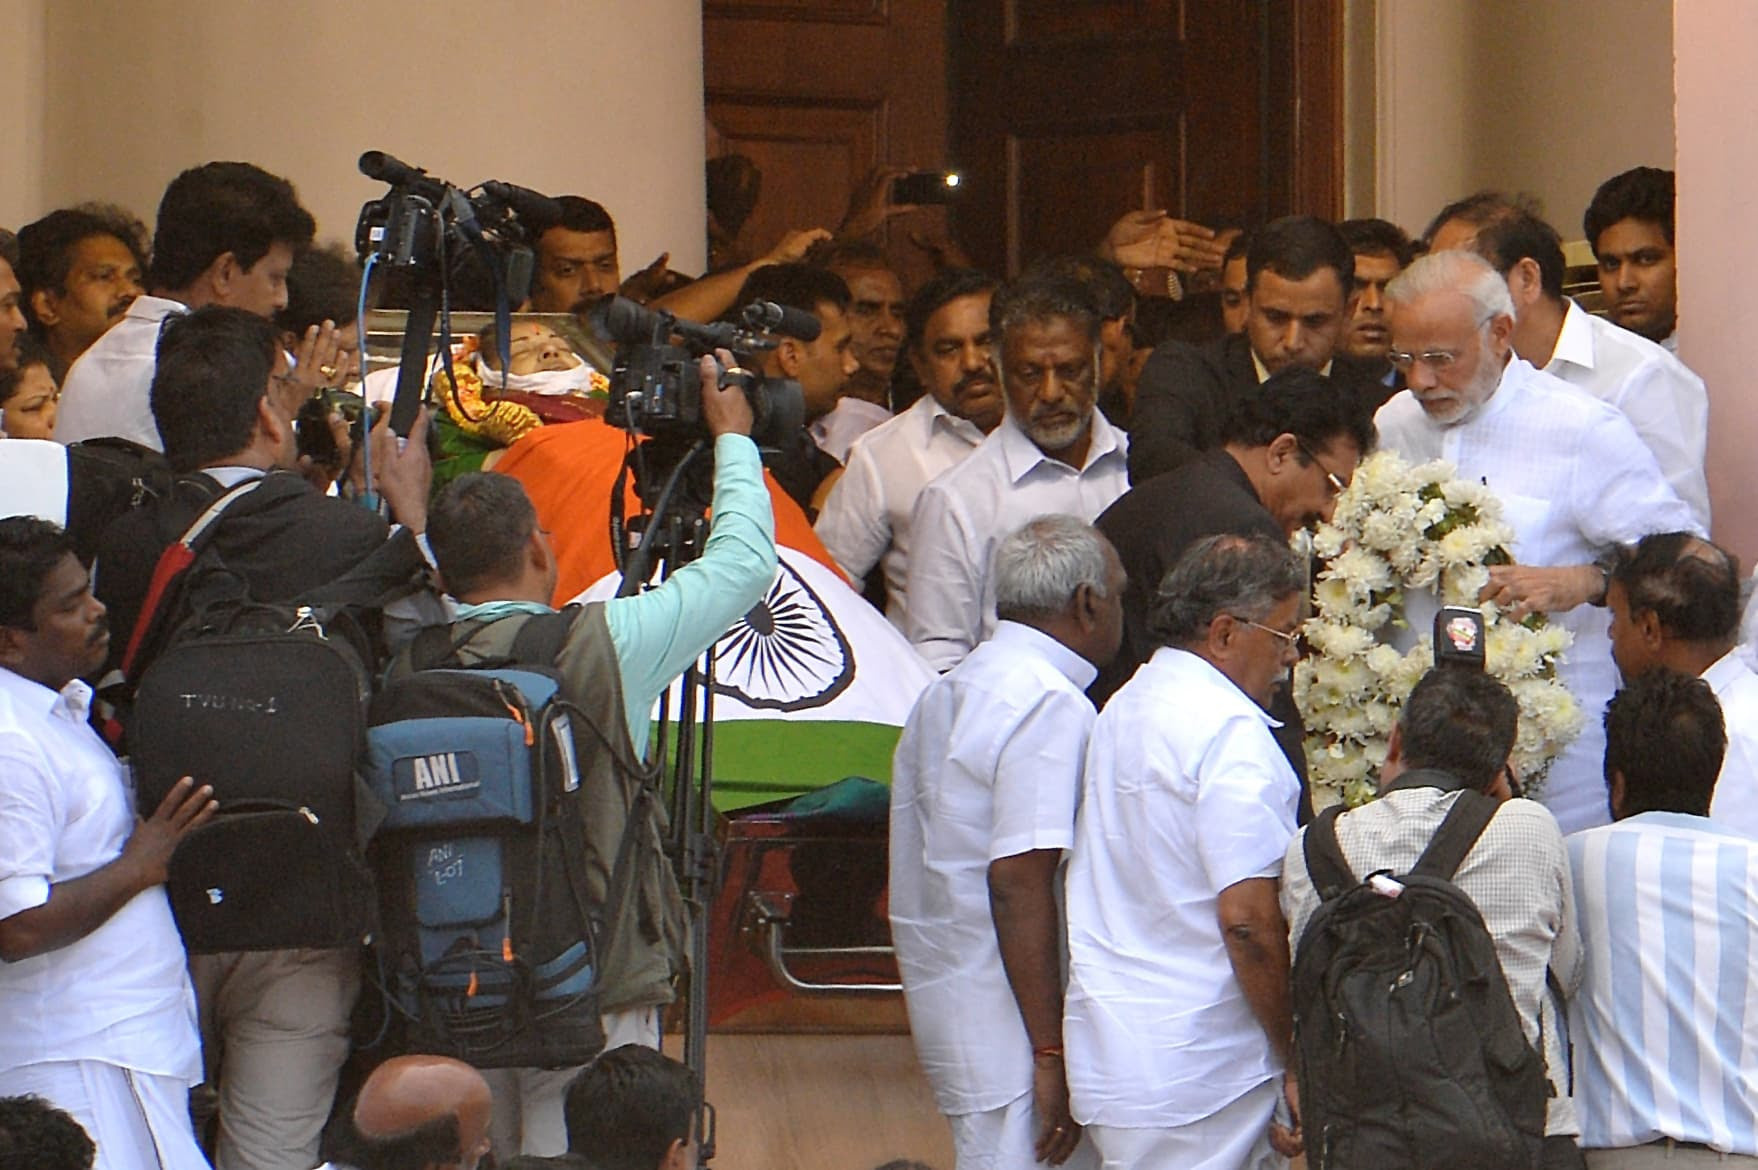 Prime Minister Narendra Modi offers a wreath to deceased Tamil Nadu chief minister J Jayalalithaa at Rajaji Hall in Chennai on Tuesday.